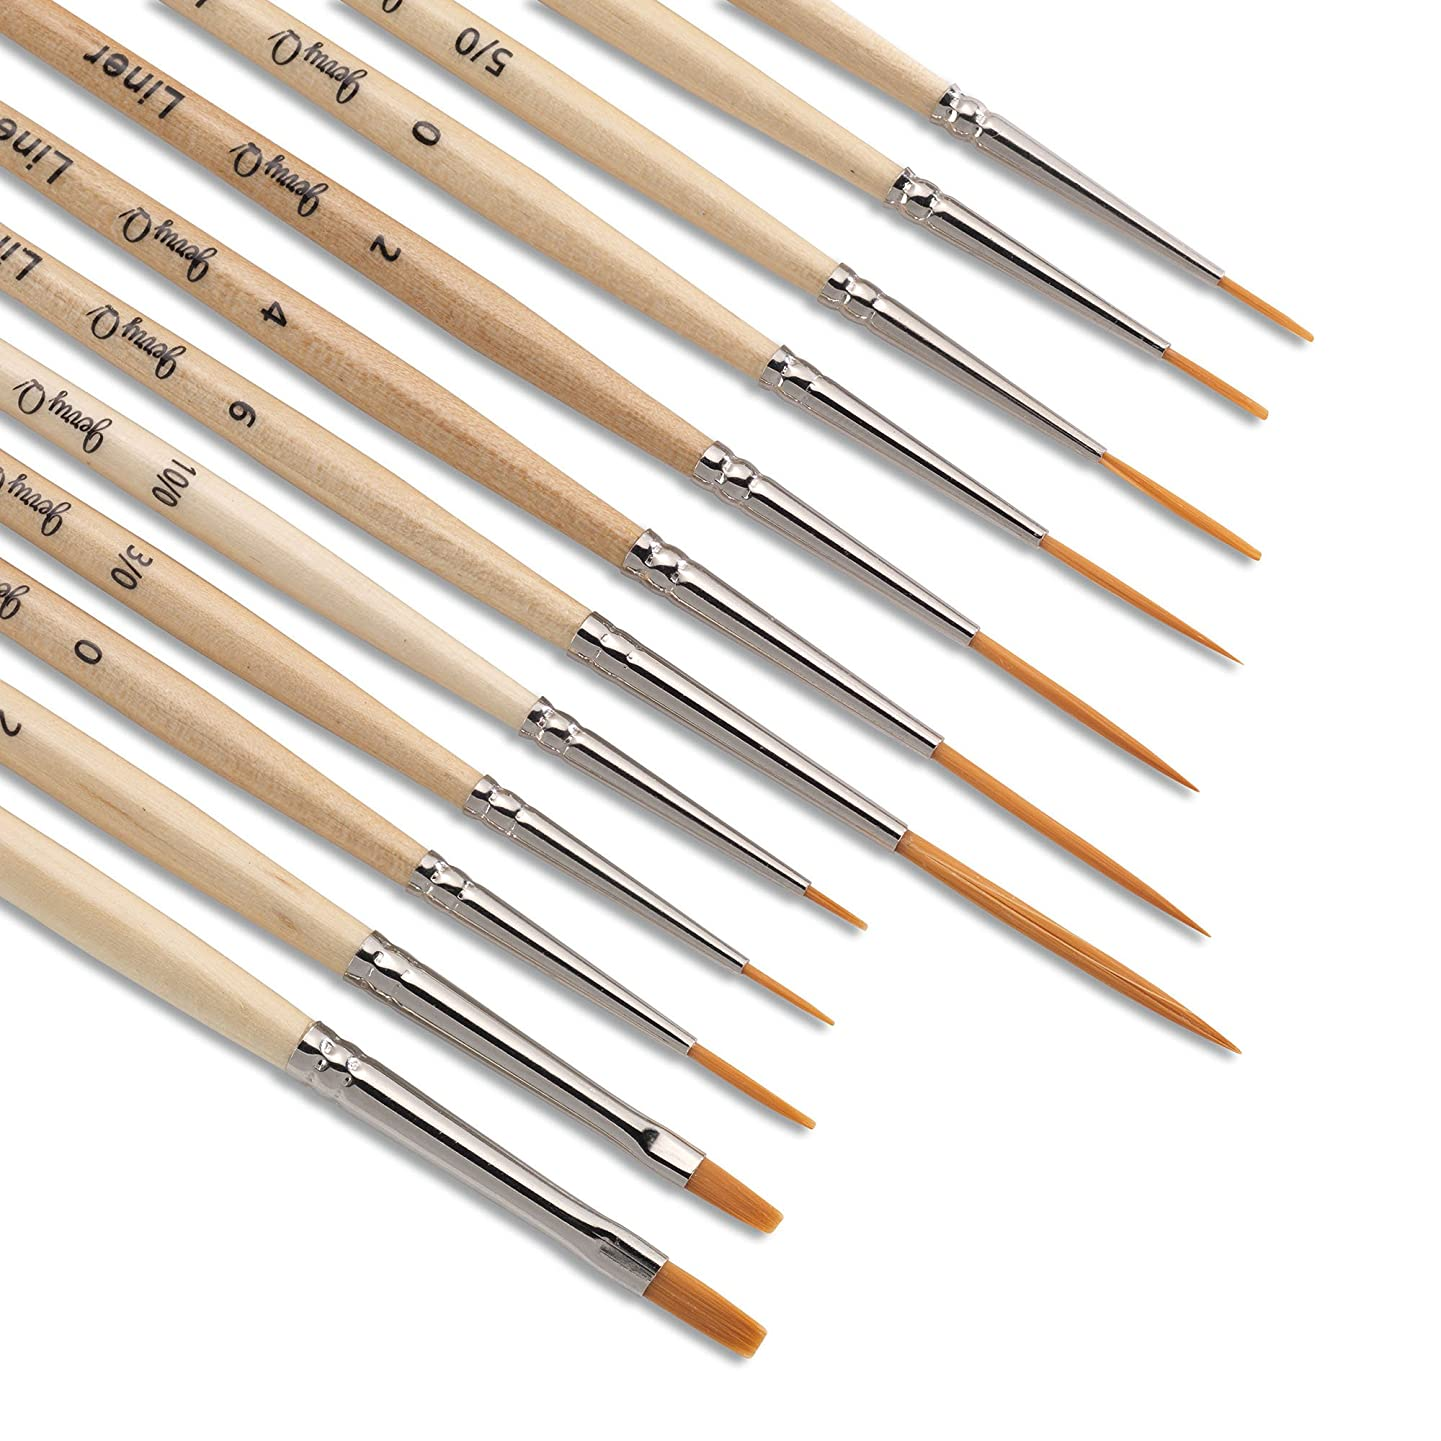 Jerry Q Art 12 Pcs Detail Paint Brushes, Golden Synthetic Hair, High Performance for Oil, Acrylic and Watercolor JQ-503